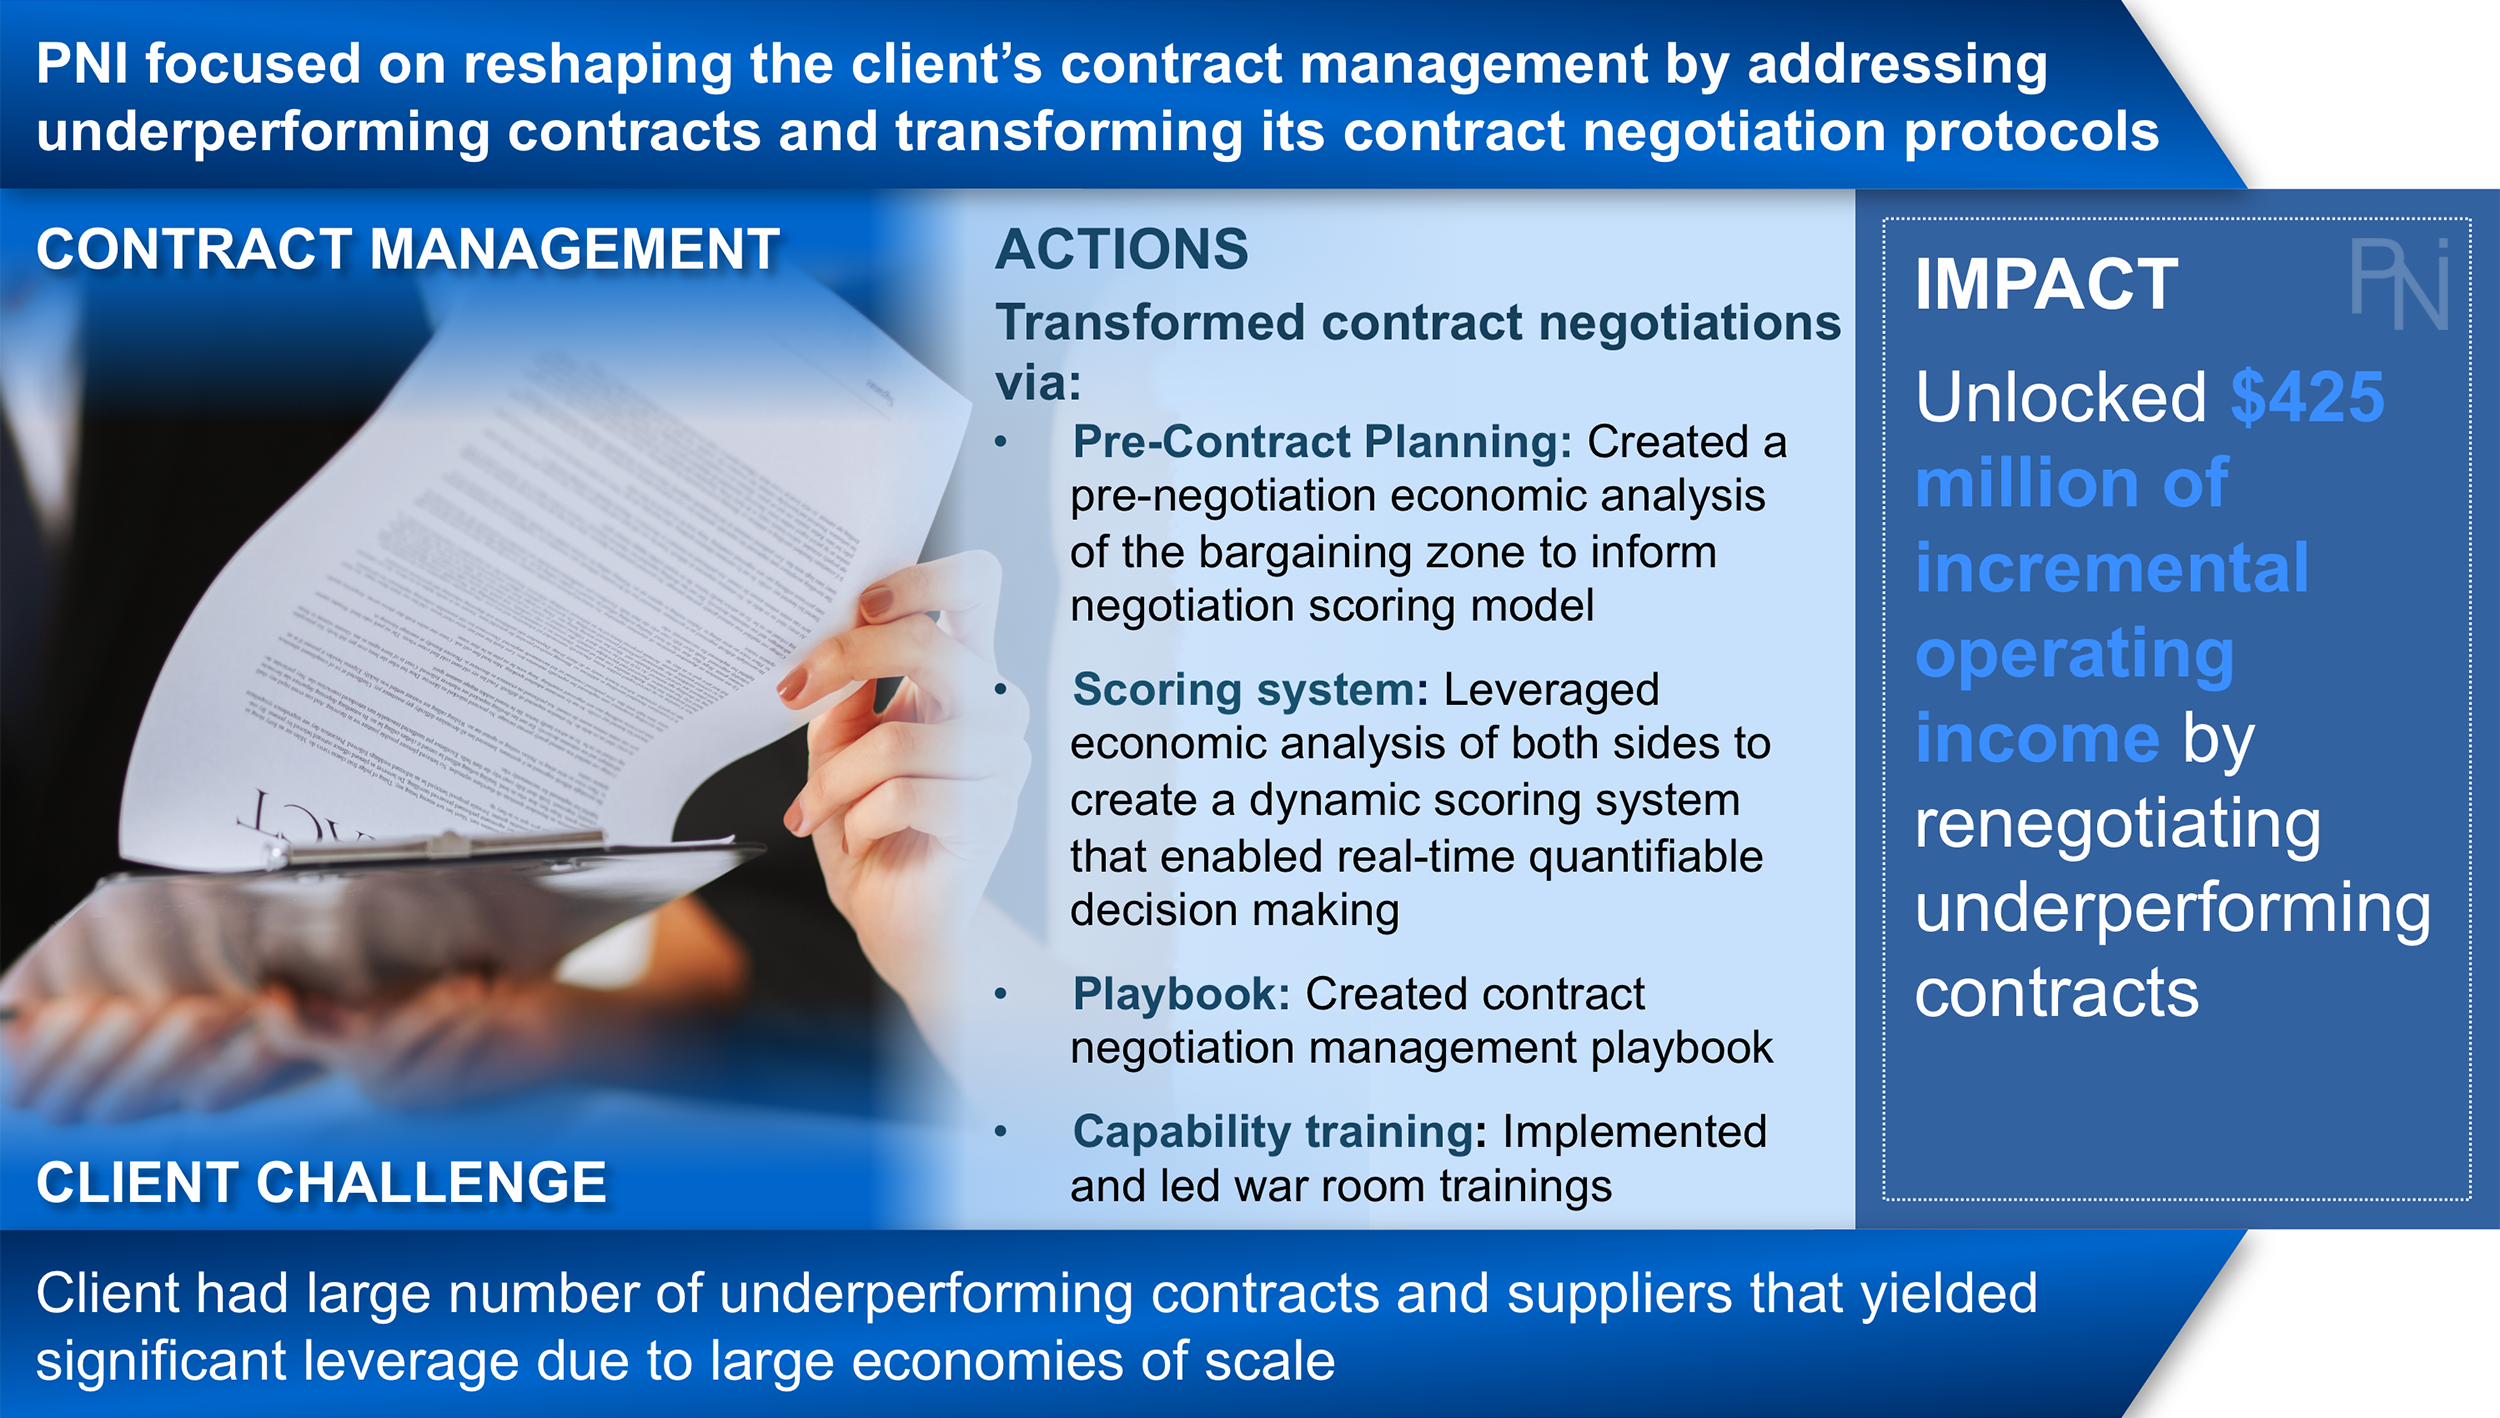 Contract Management Results 1 - PNI.png